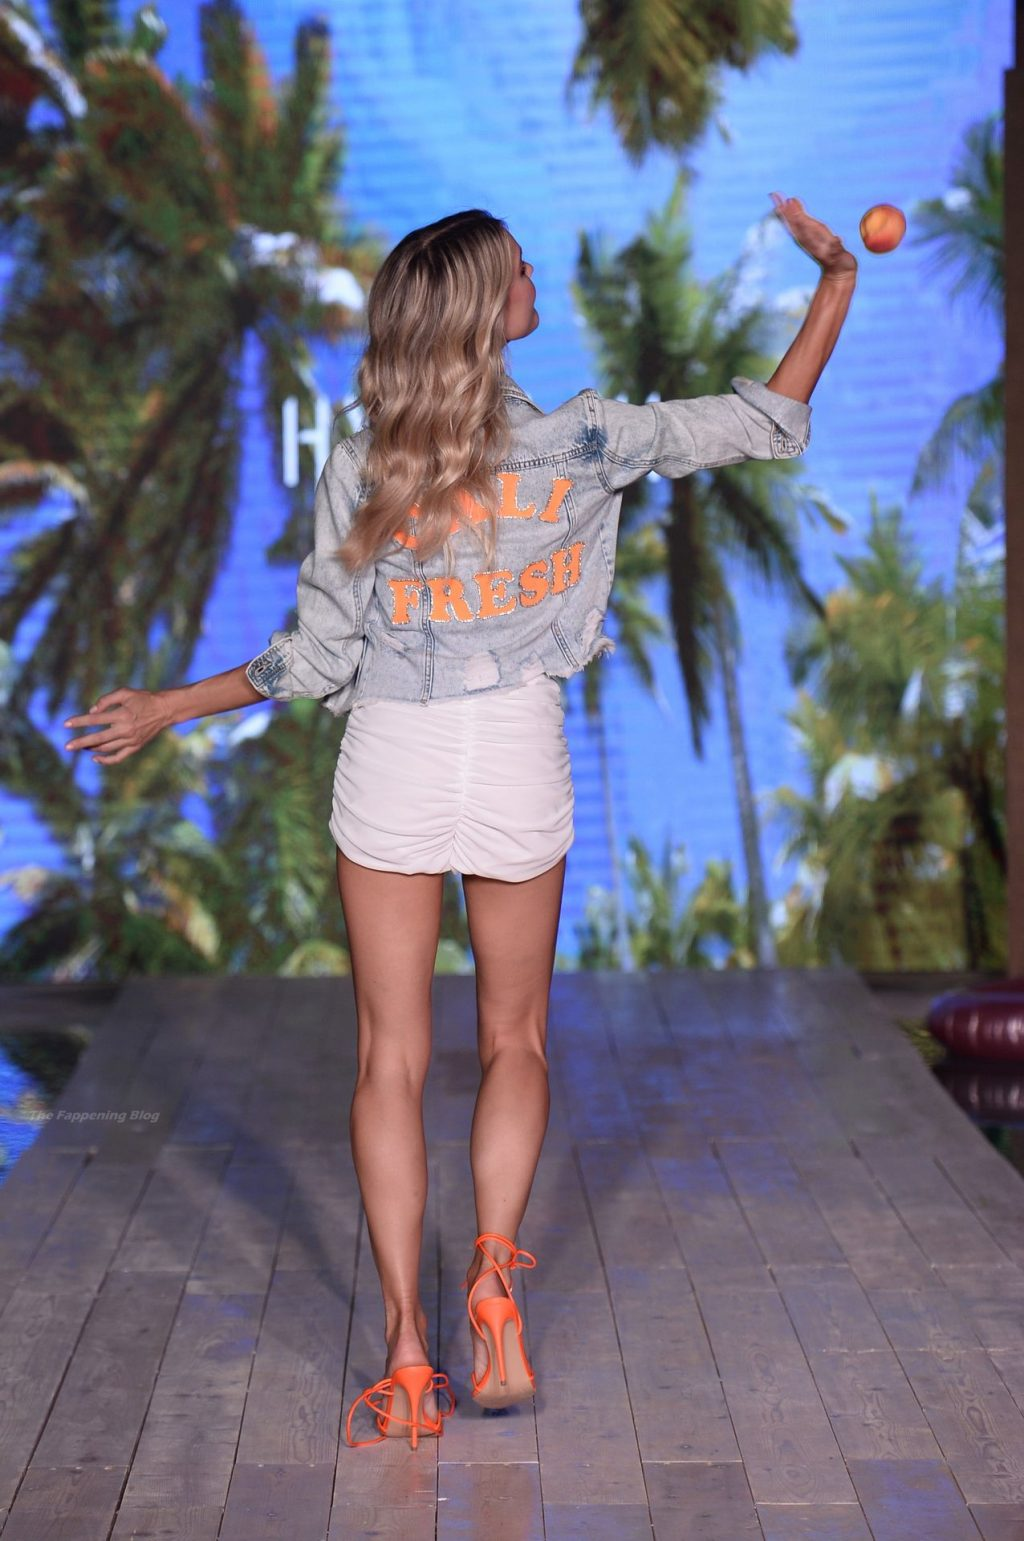 Joy Corrigan Flaunts Her Nude Tits on the Runway for Hypeach During 2021 Miami Swim Week (8 Photos)